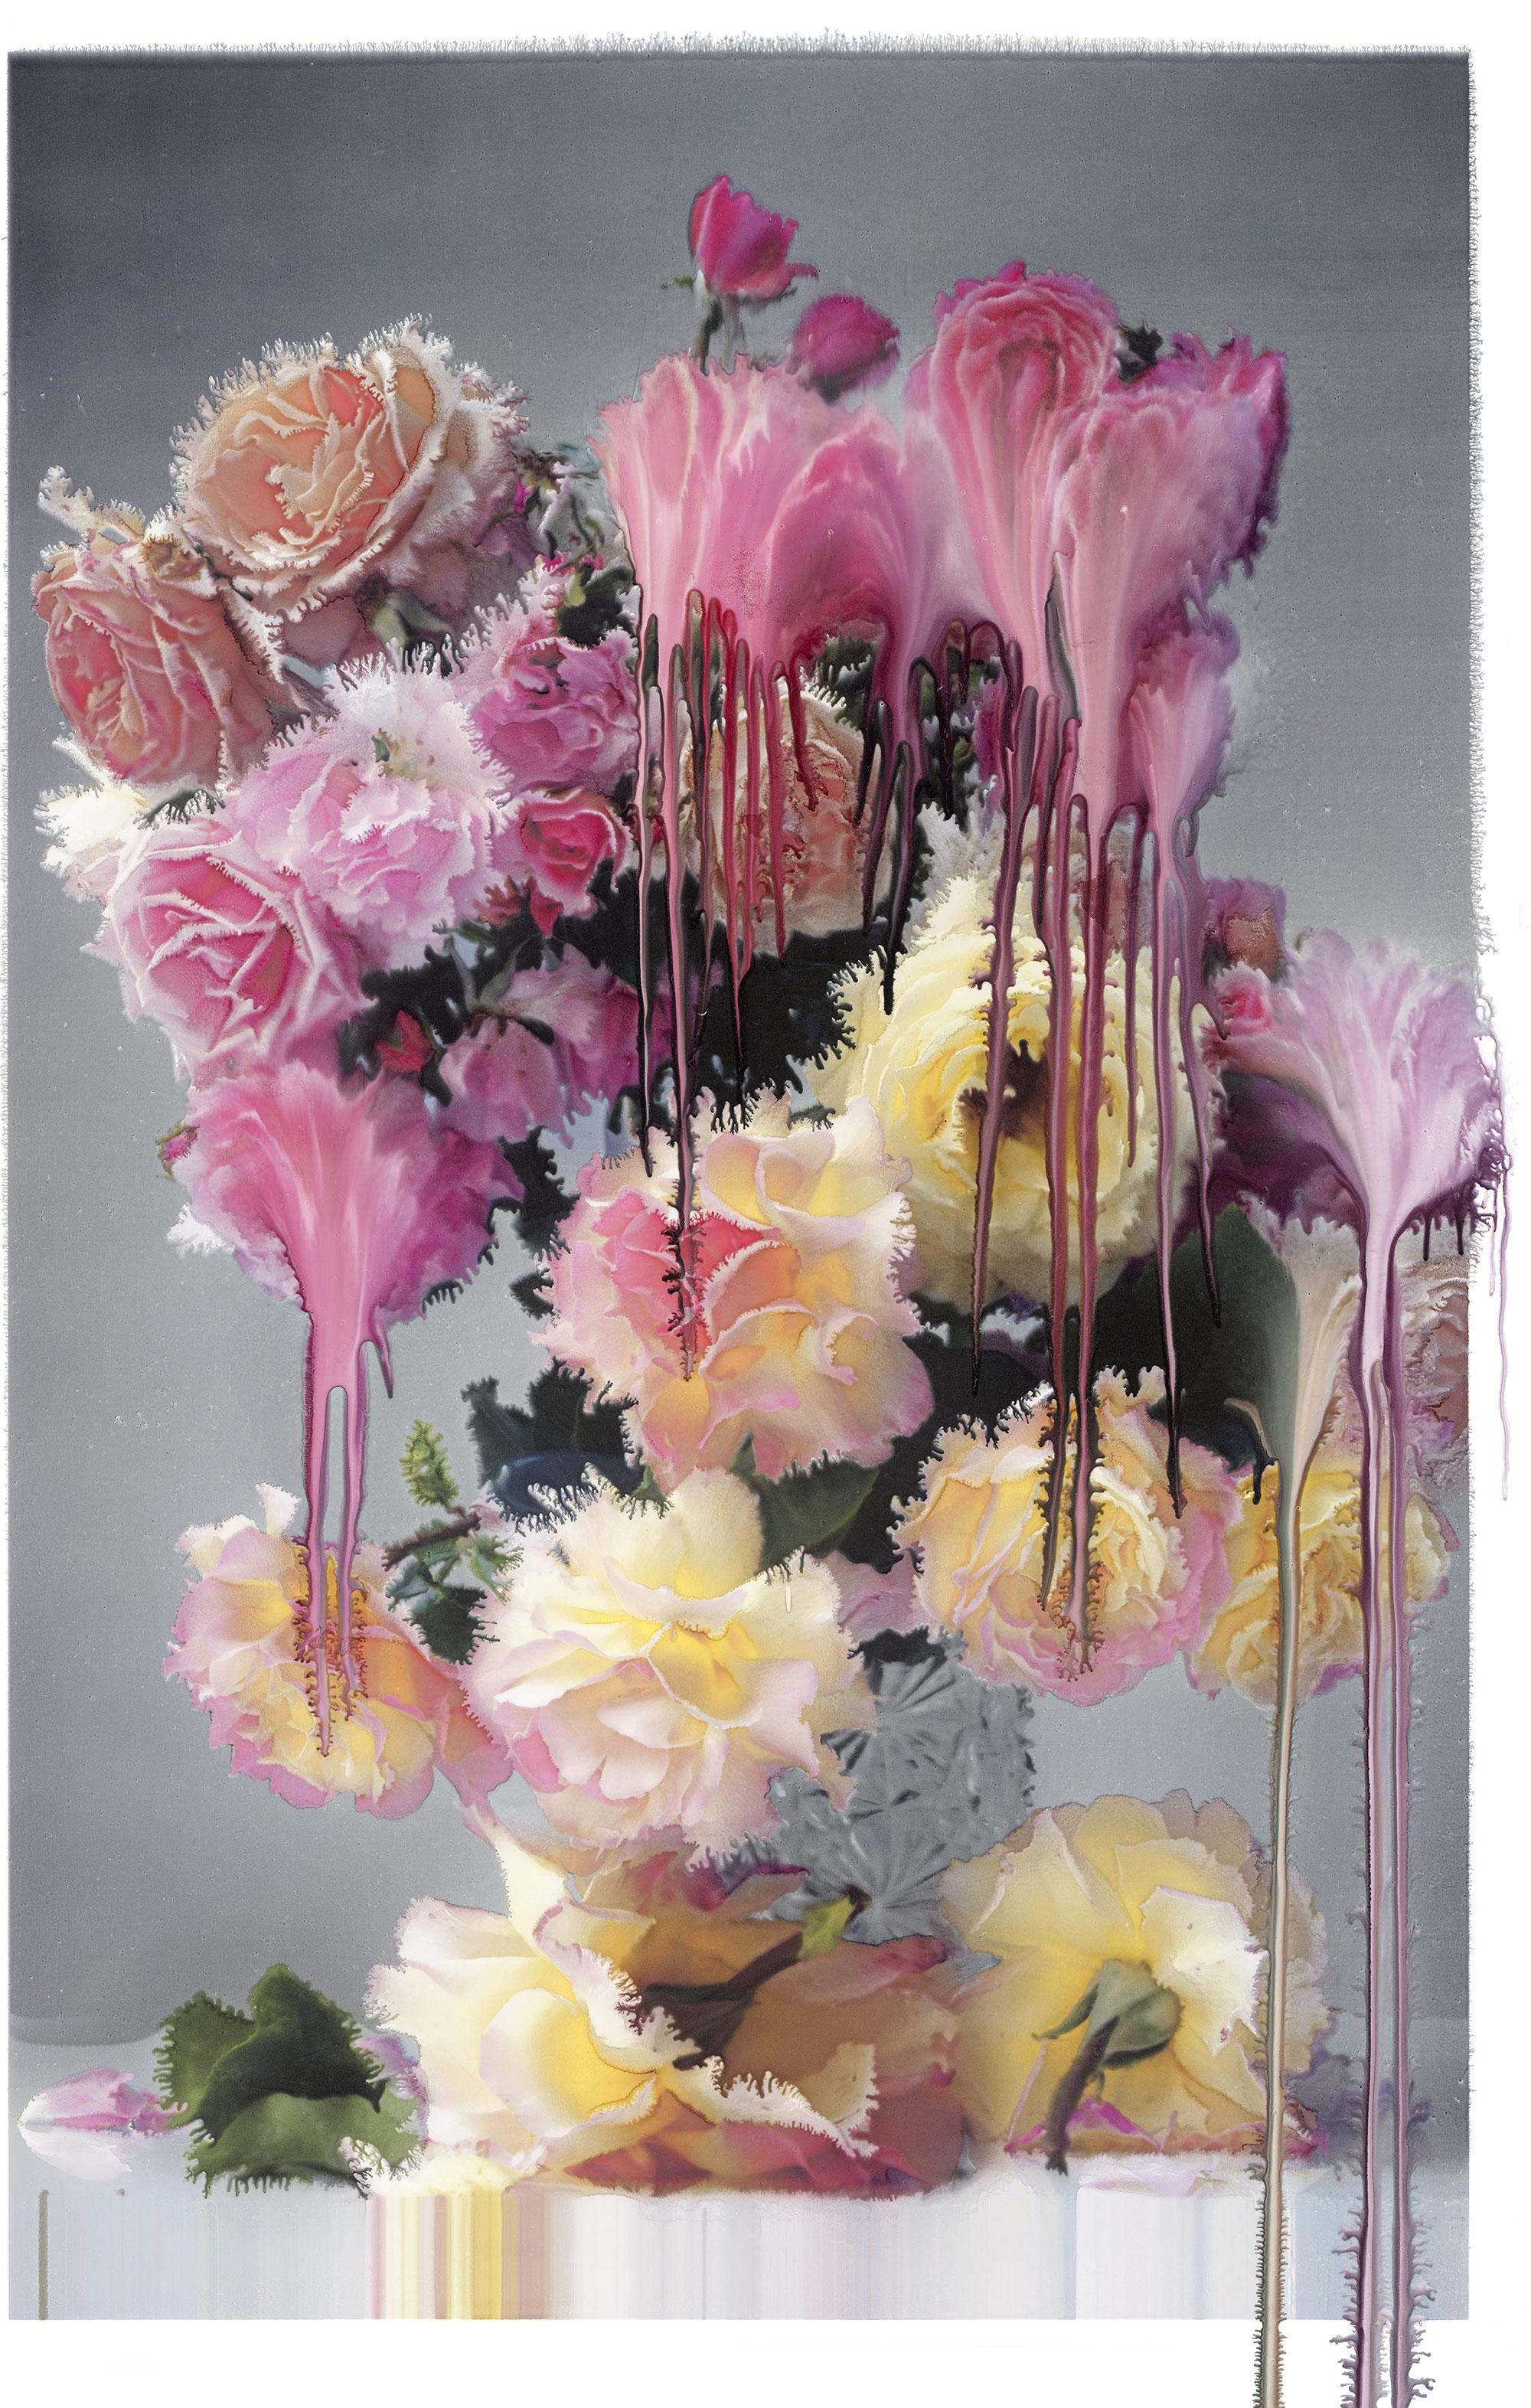 © Nick Knight, Rose I, 2012 (117.47 x 76.2 cm)